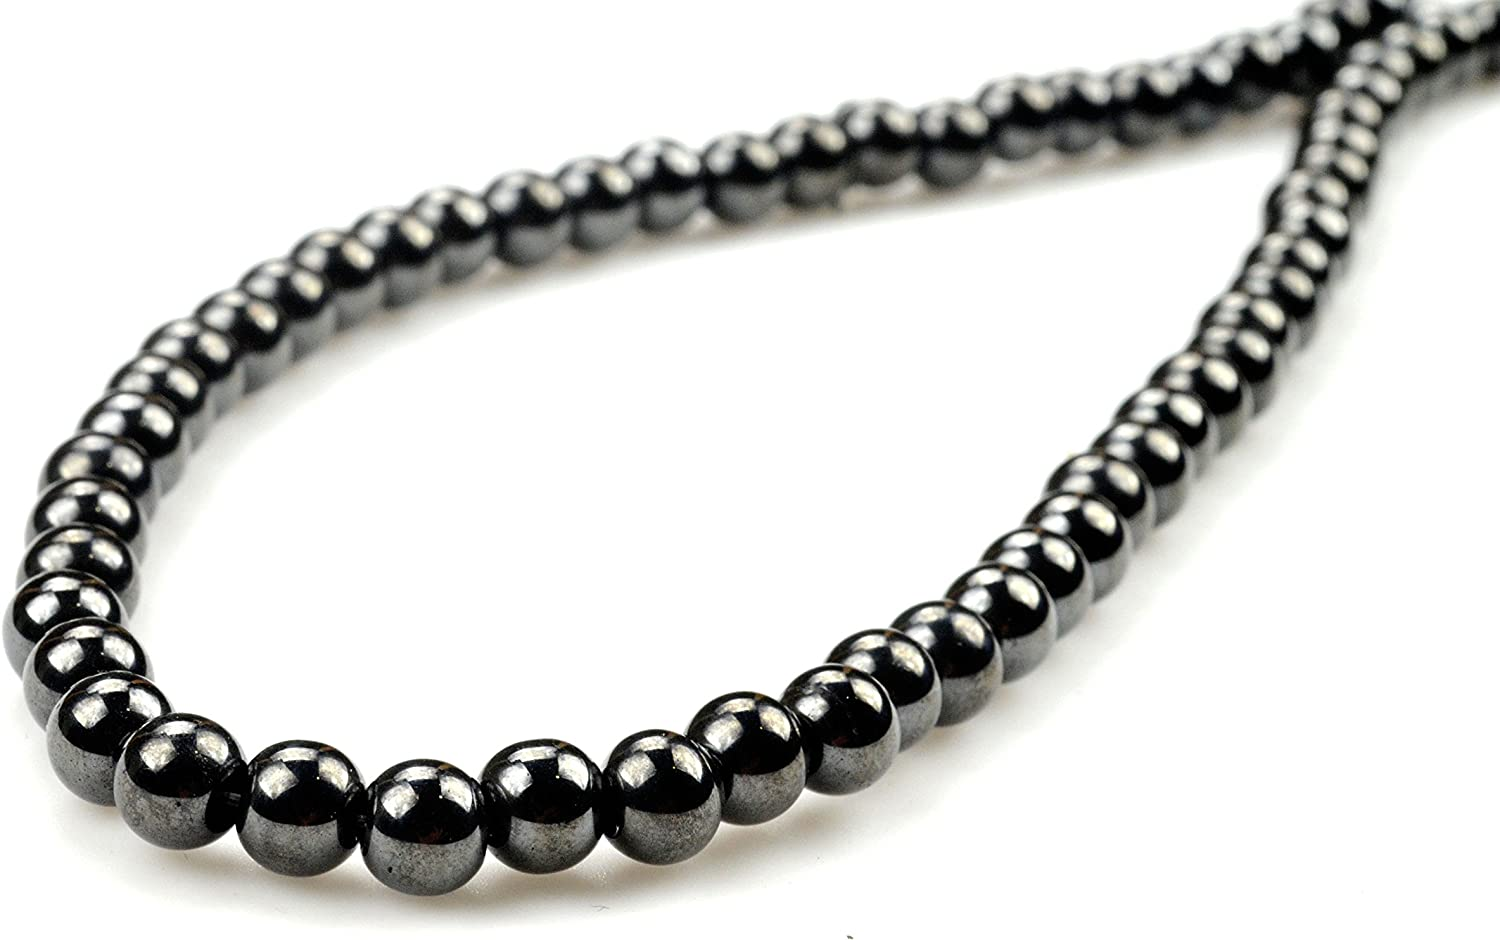 PURPLE WHALE Magnetic Hematite Round Bead Necklace 20